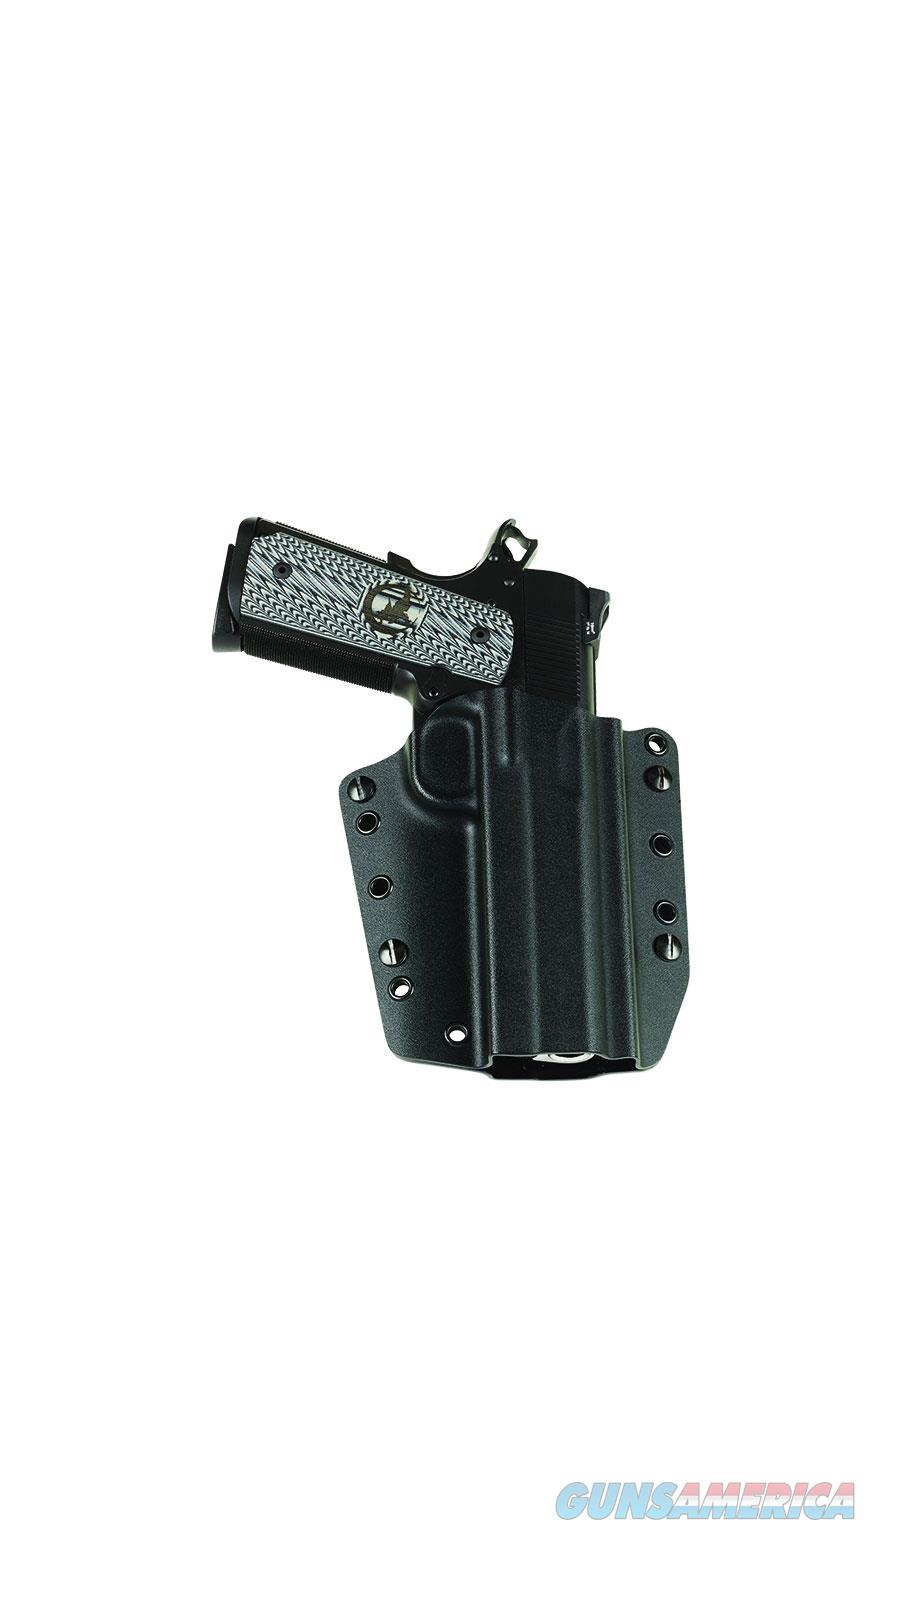 "Galco Cvs212 Corvus Iwb 1911 5"" Kydex Black CVS212  Non-Guns > Holsters and Gunleather > Other"